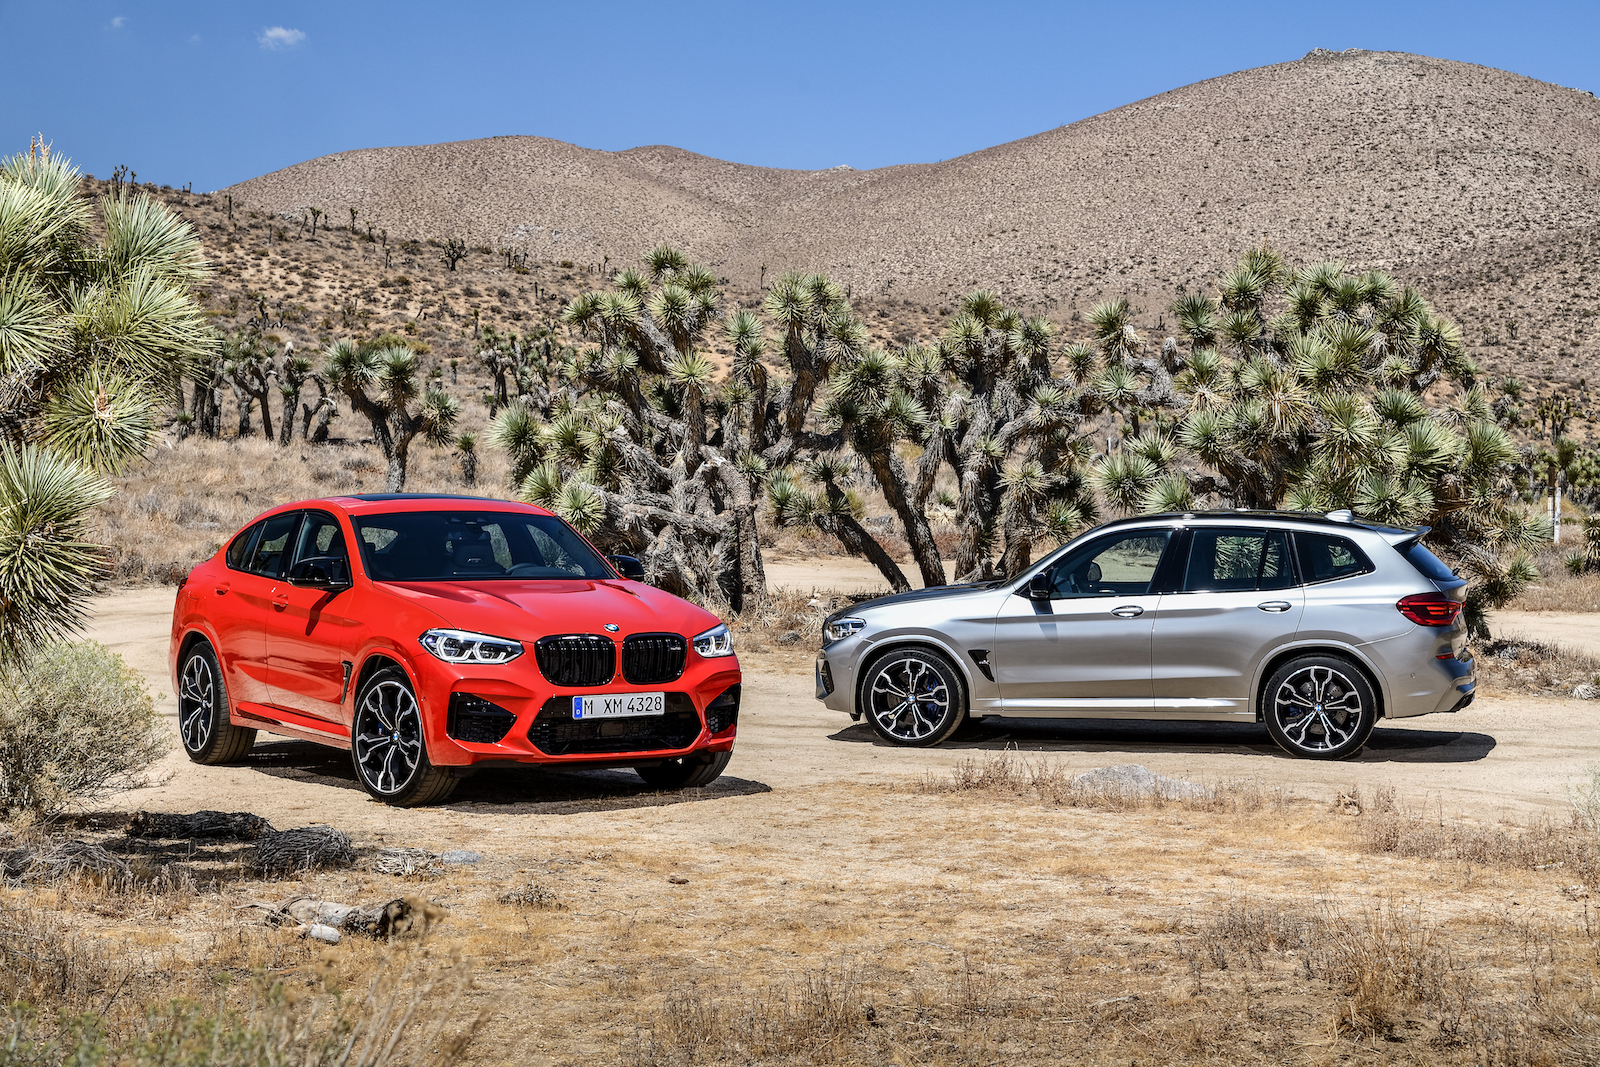 2020 Bmw X3 M And X4 M Arrive With 503 Hp And 177 Mph Top Speed